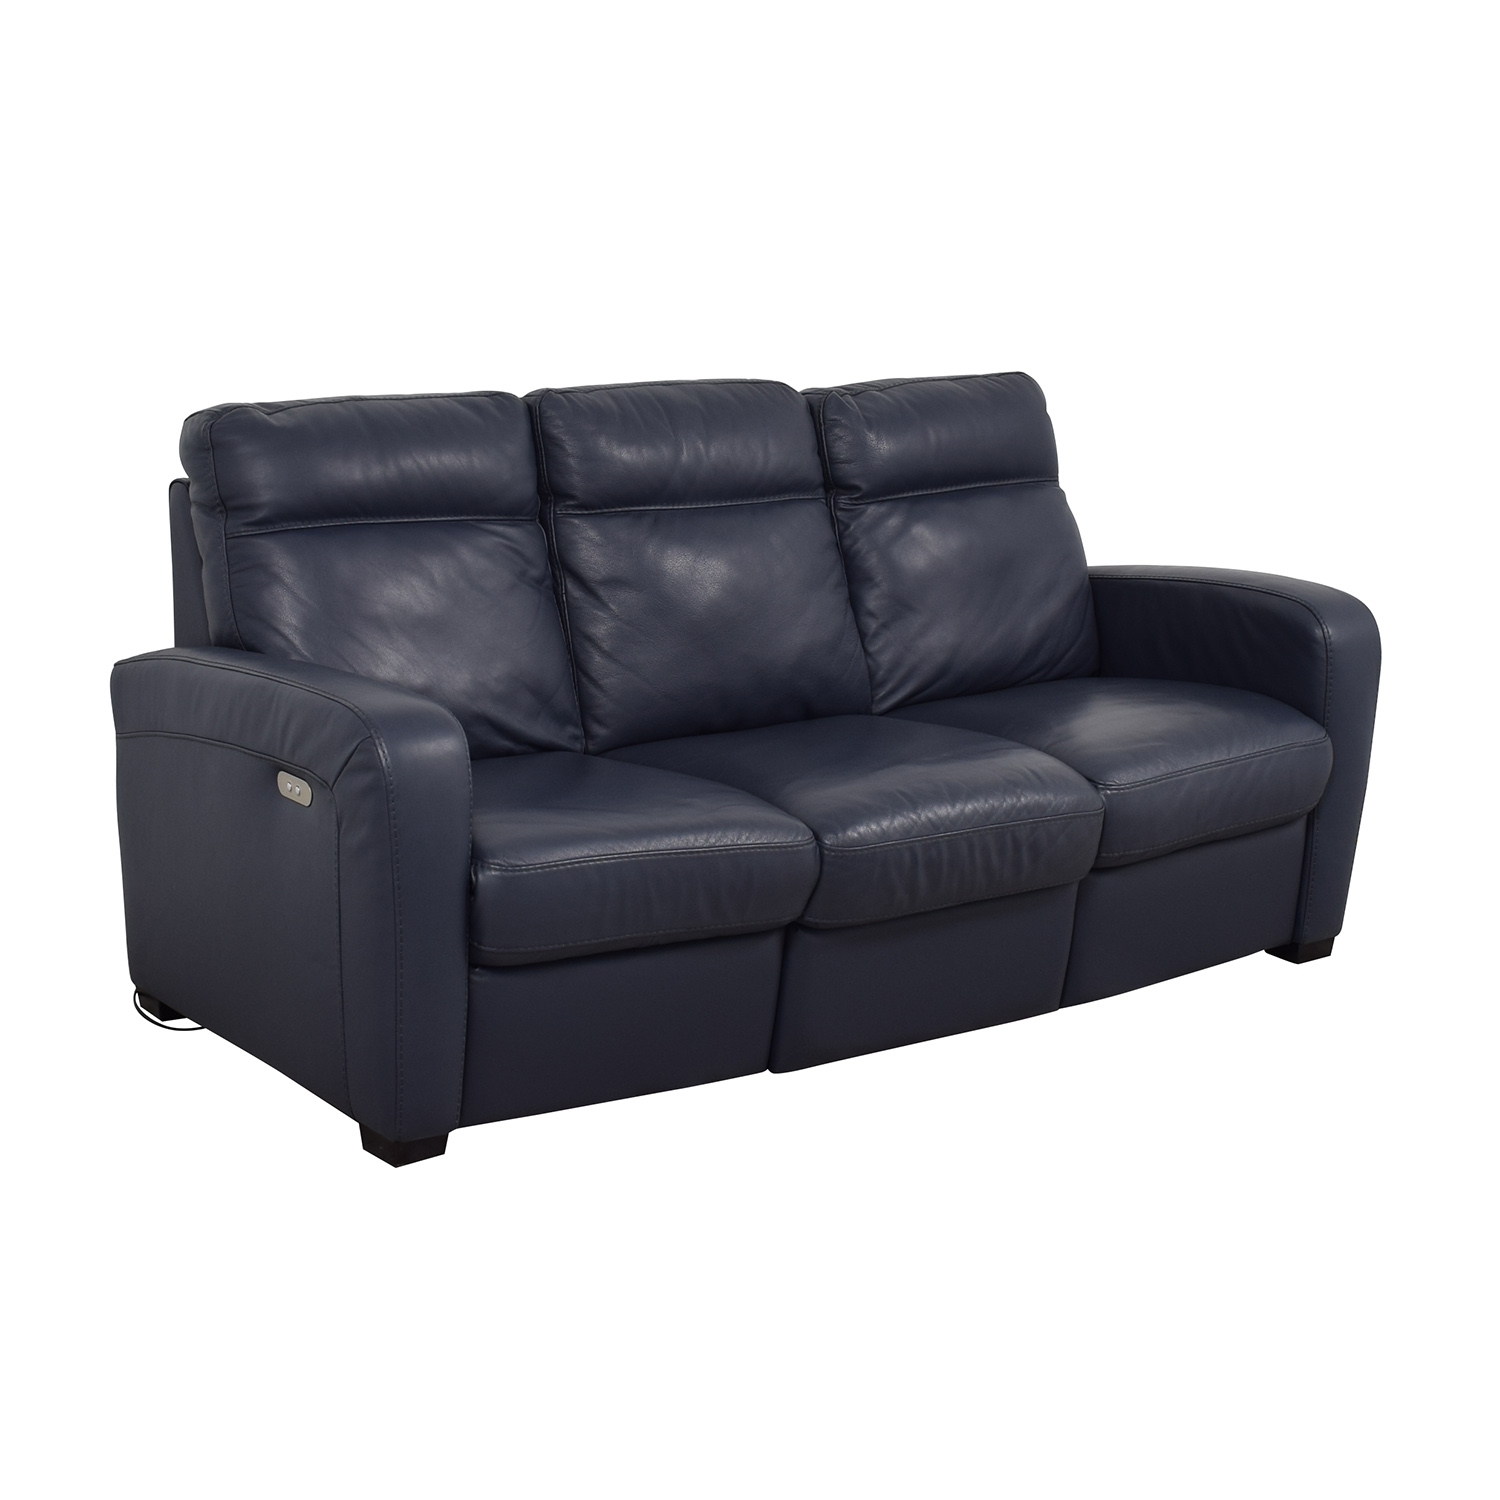 63 Off Natuzzi Natuzzi Rodrigo Navy Leather Power